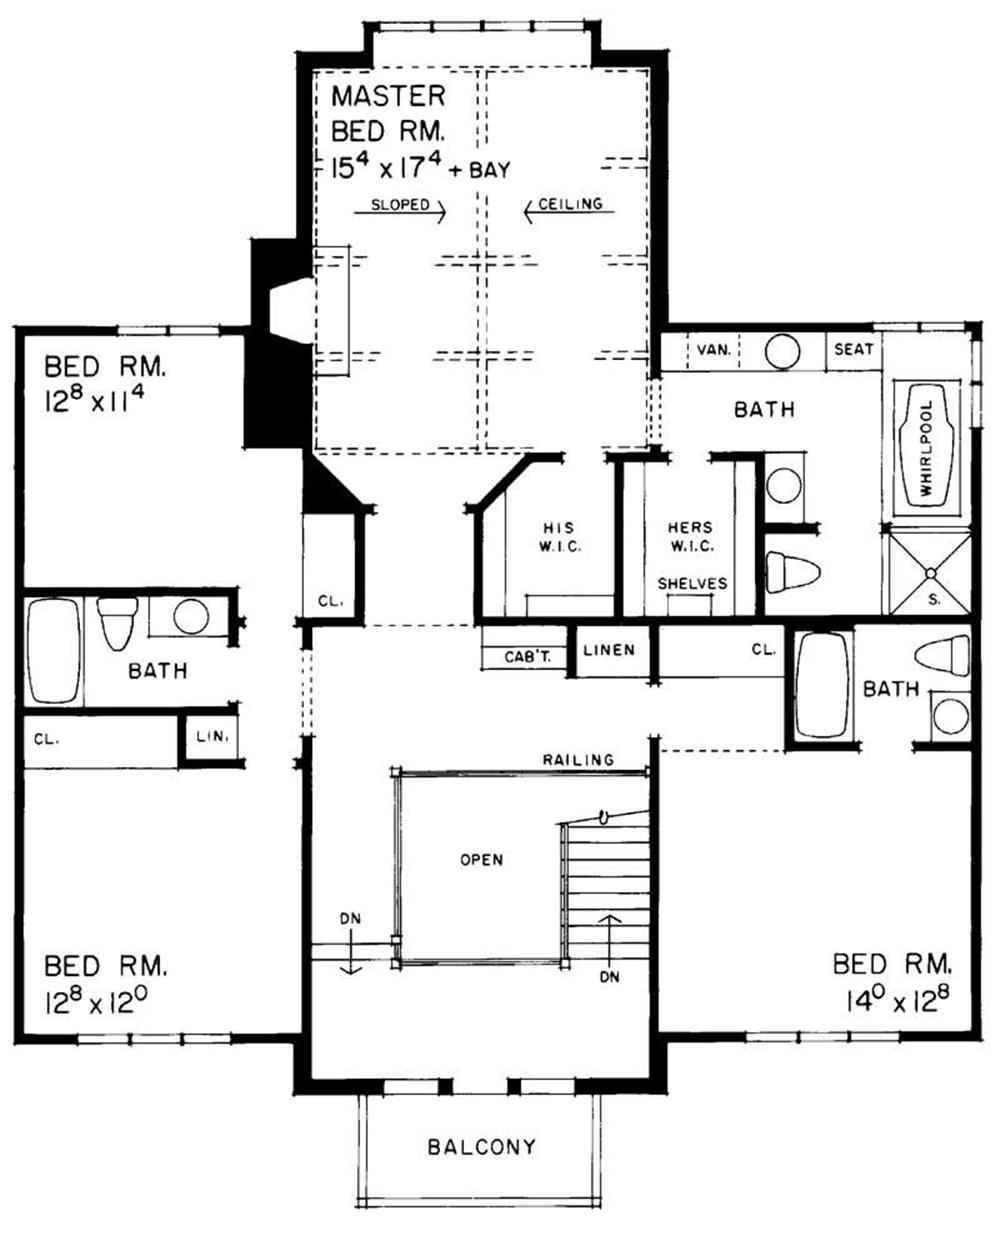 images of floor plans large images for house plan 137 1505 18768